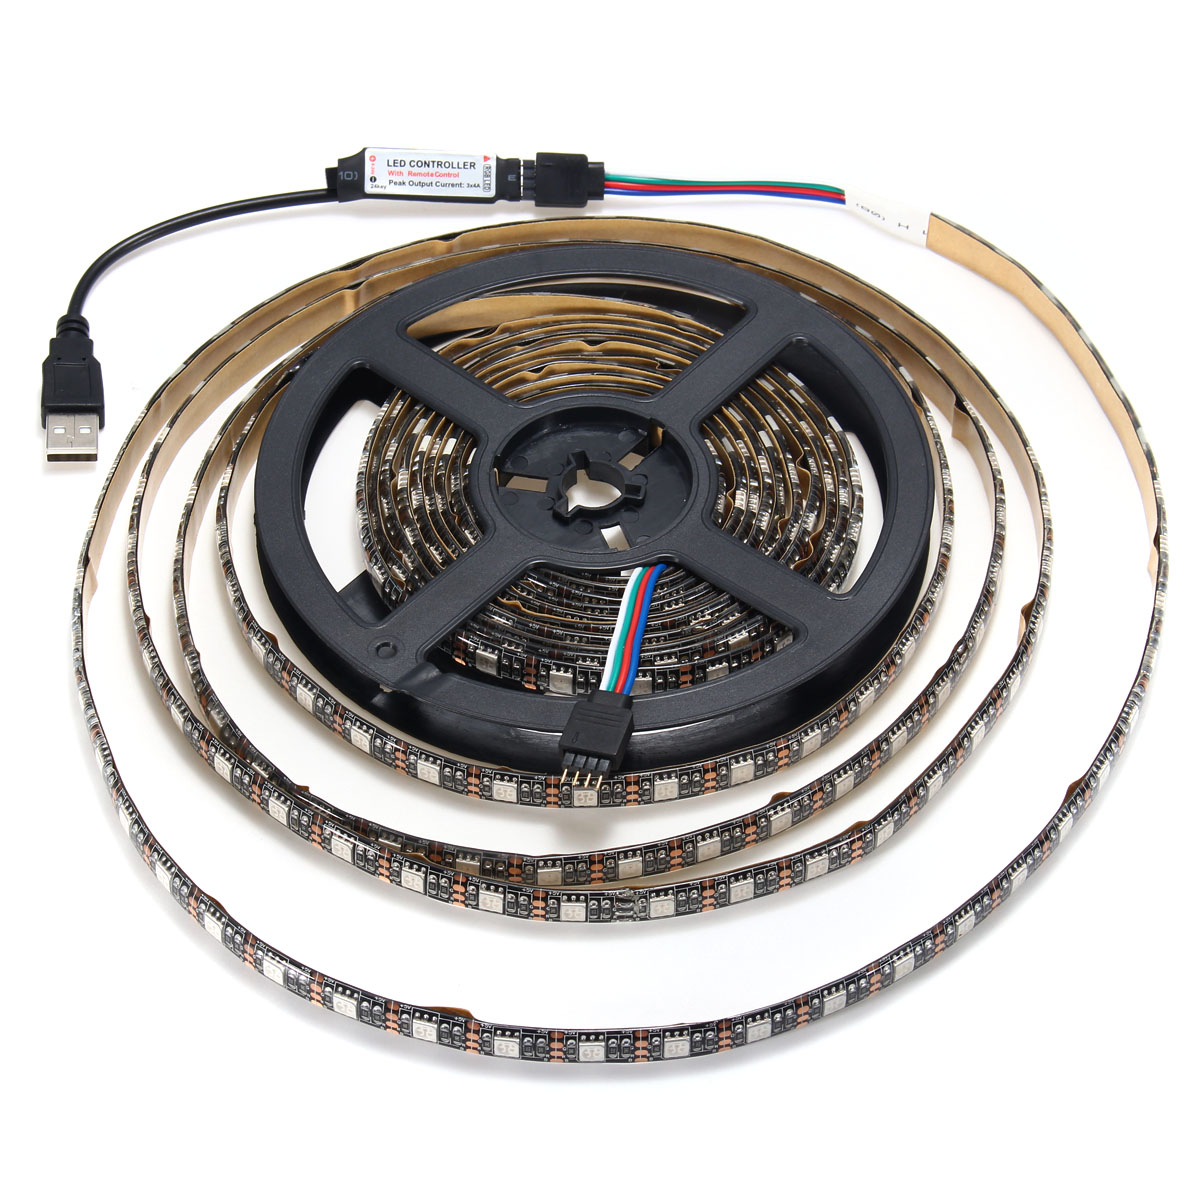 0.5/1/2/3/4/5M SMD5050 RGB Waterproof LED Strip Light TV Back Lighting Kit + USB Remote Control DC5V